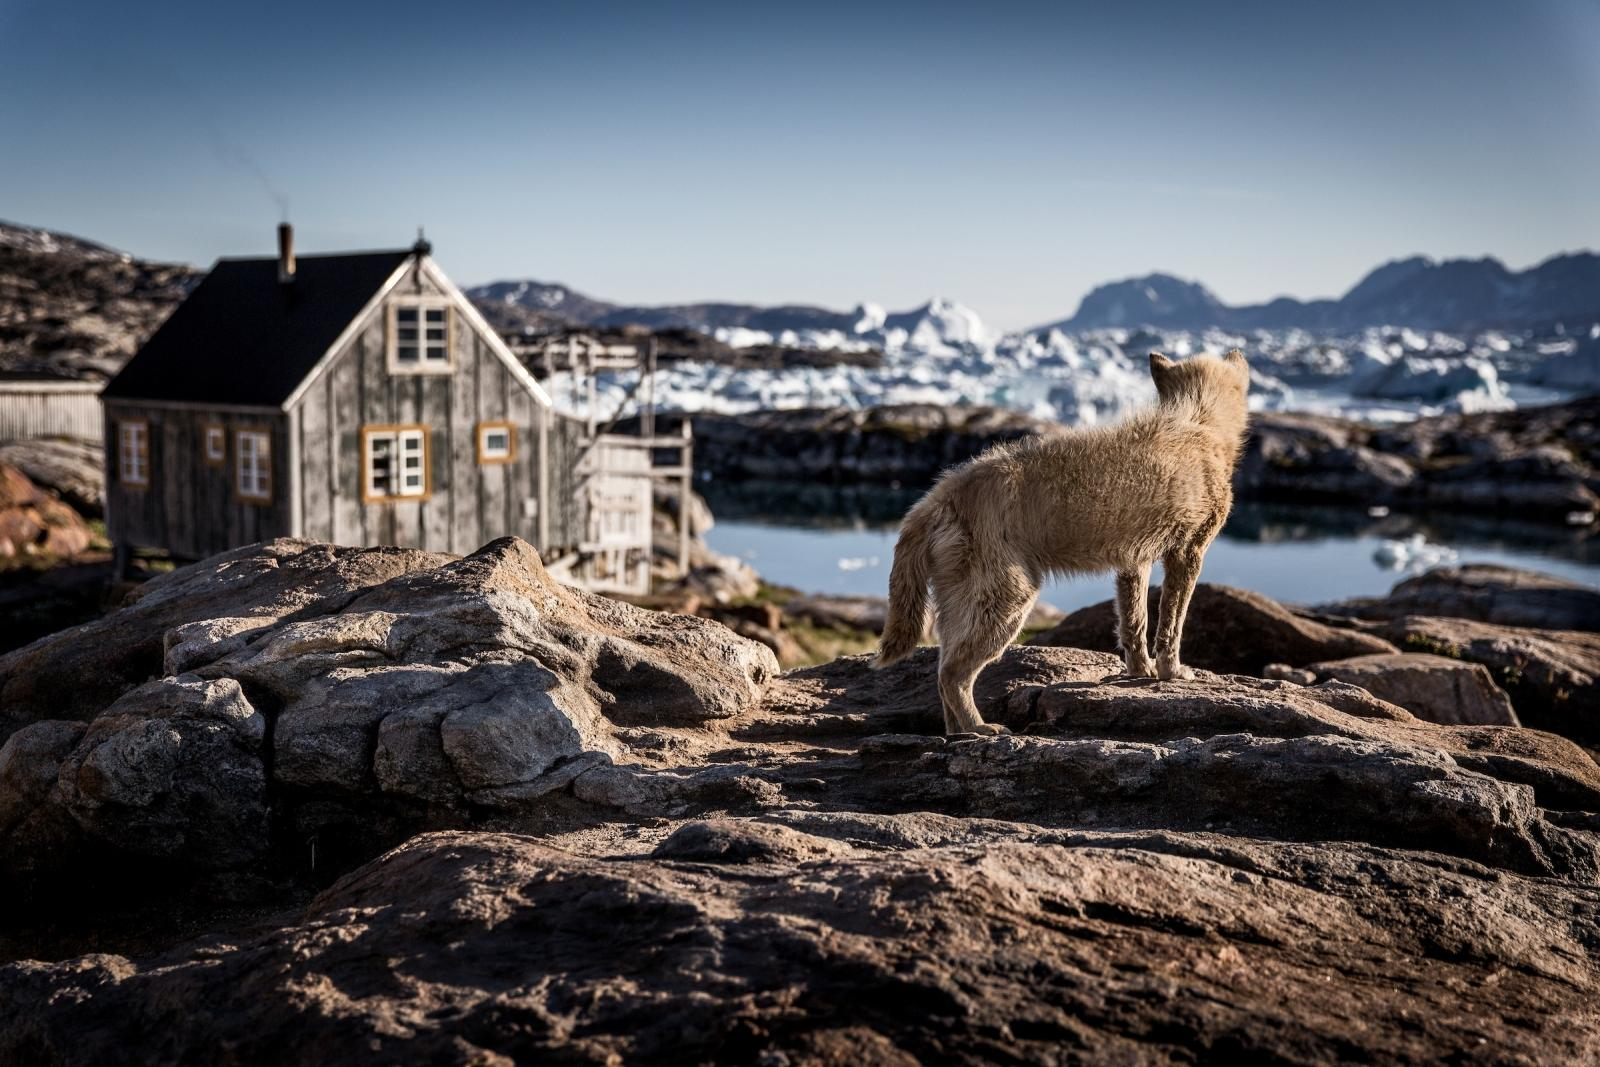 A sled dog in Tiniteqilaaq waiting for winter in East Greenland. Photo by Mads Pihl - Visit Greenland